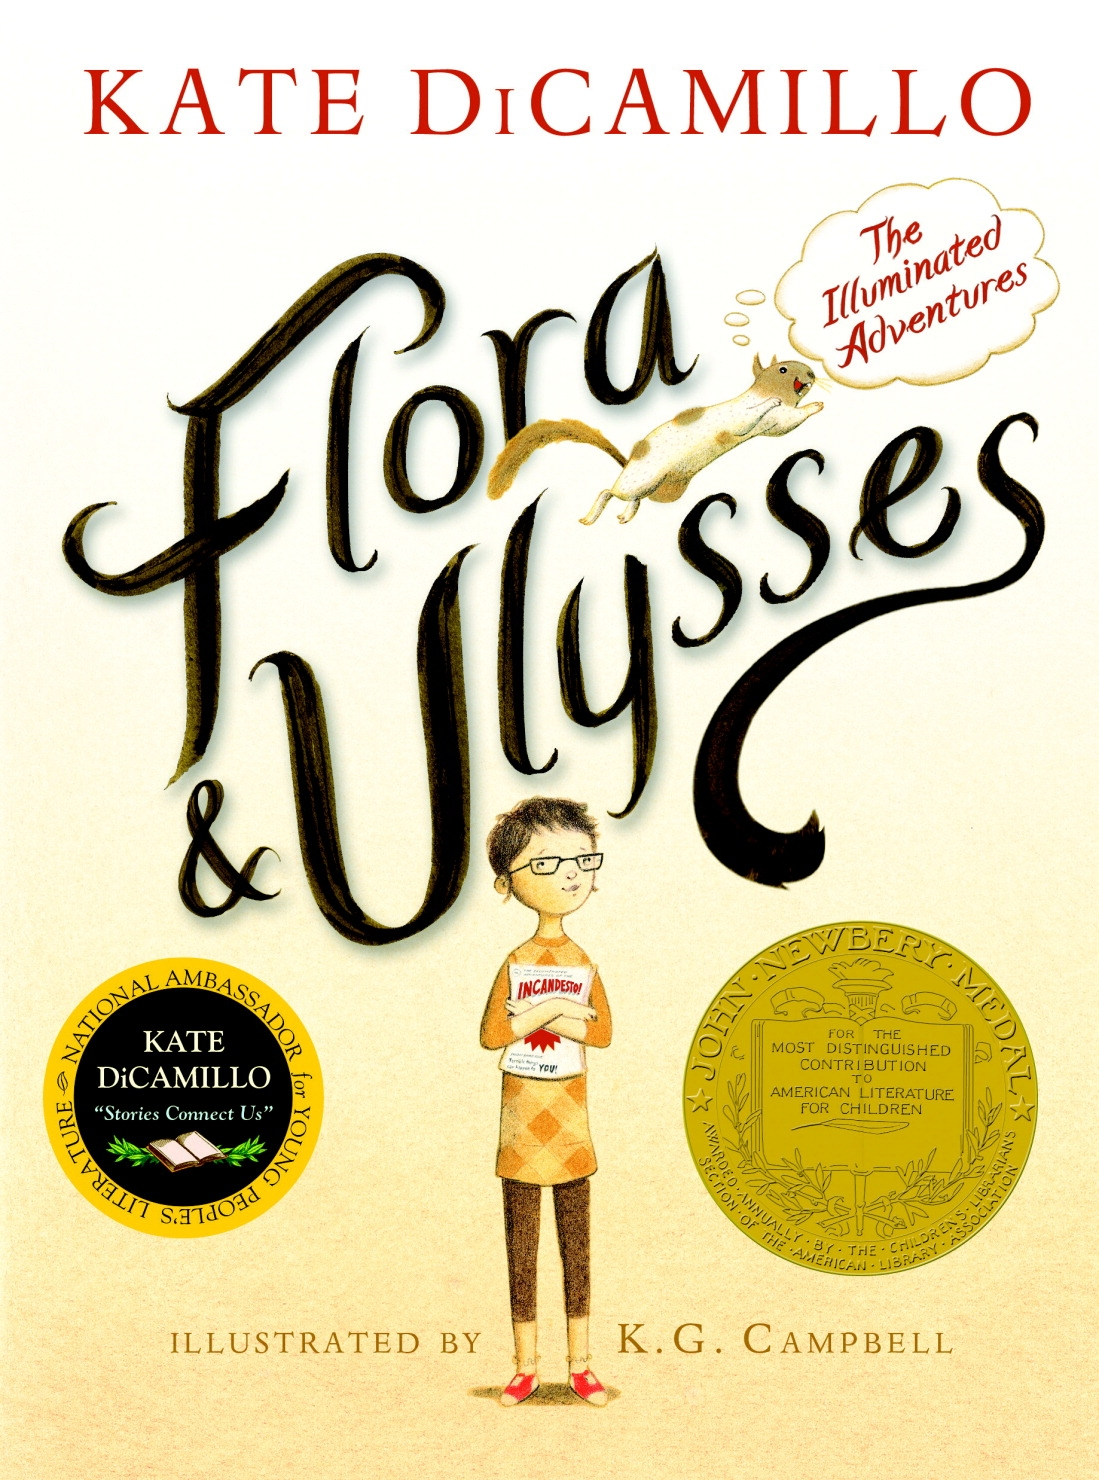 School Specialty Flora And Ulysses: The Illuminated Adventures Book-kate Dicamillo; Pack Of 6 - 1501192 - Instructional Materials Resources Science Activities Equipment Physical Science Projects Books 1501192